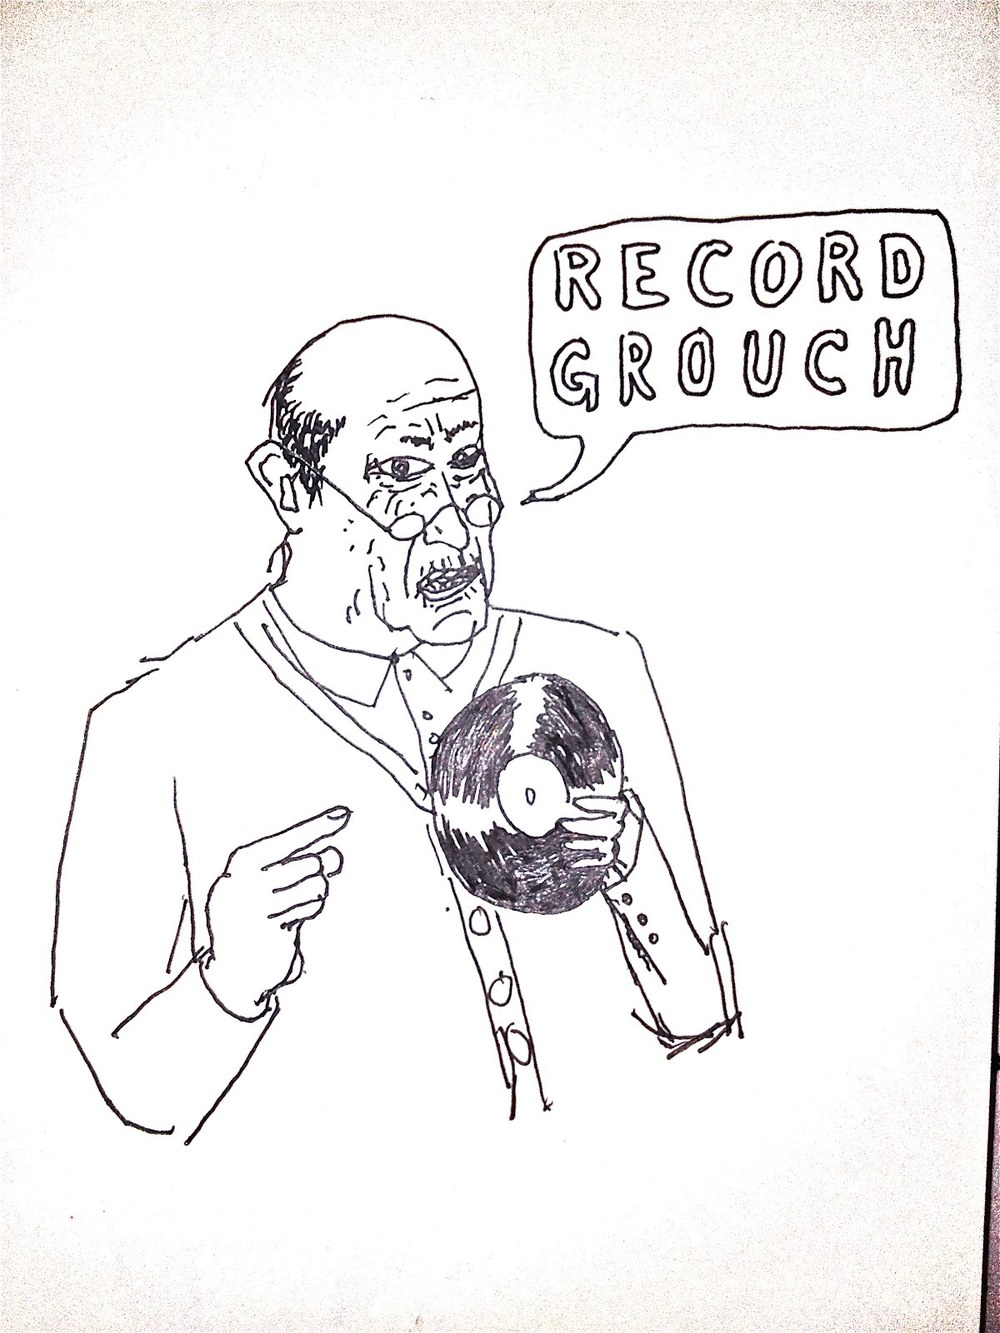 RecordGrouch.jpg